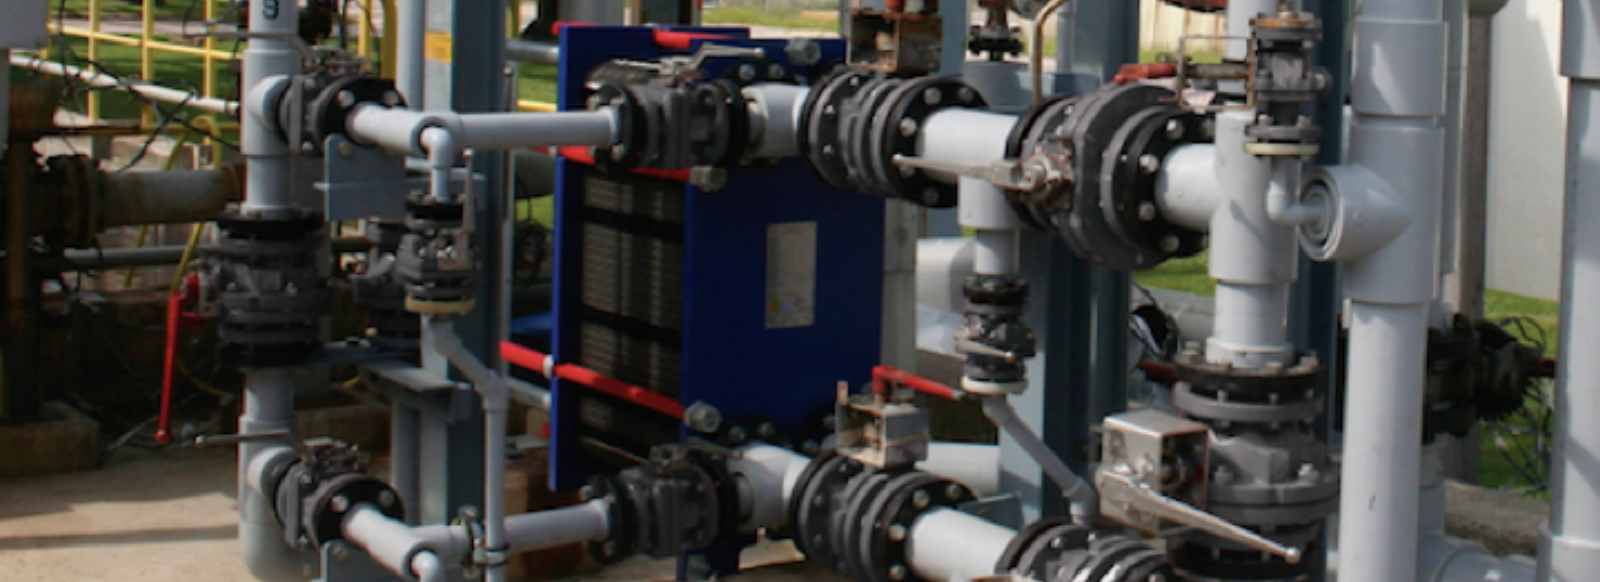 Choosing the Right CPVC For Your Piping System